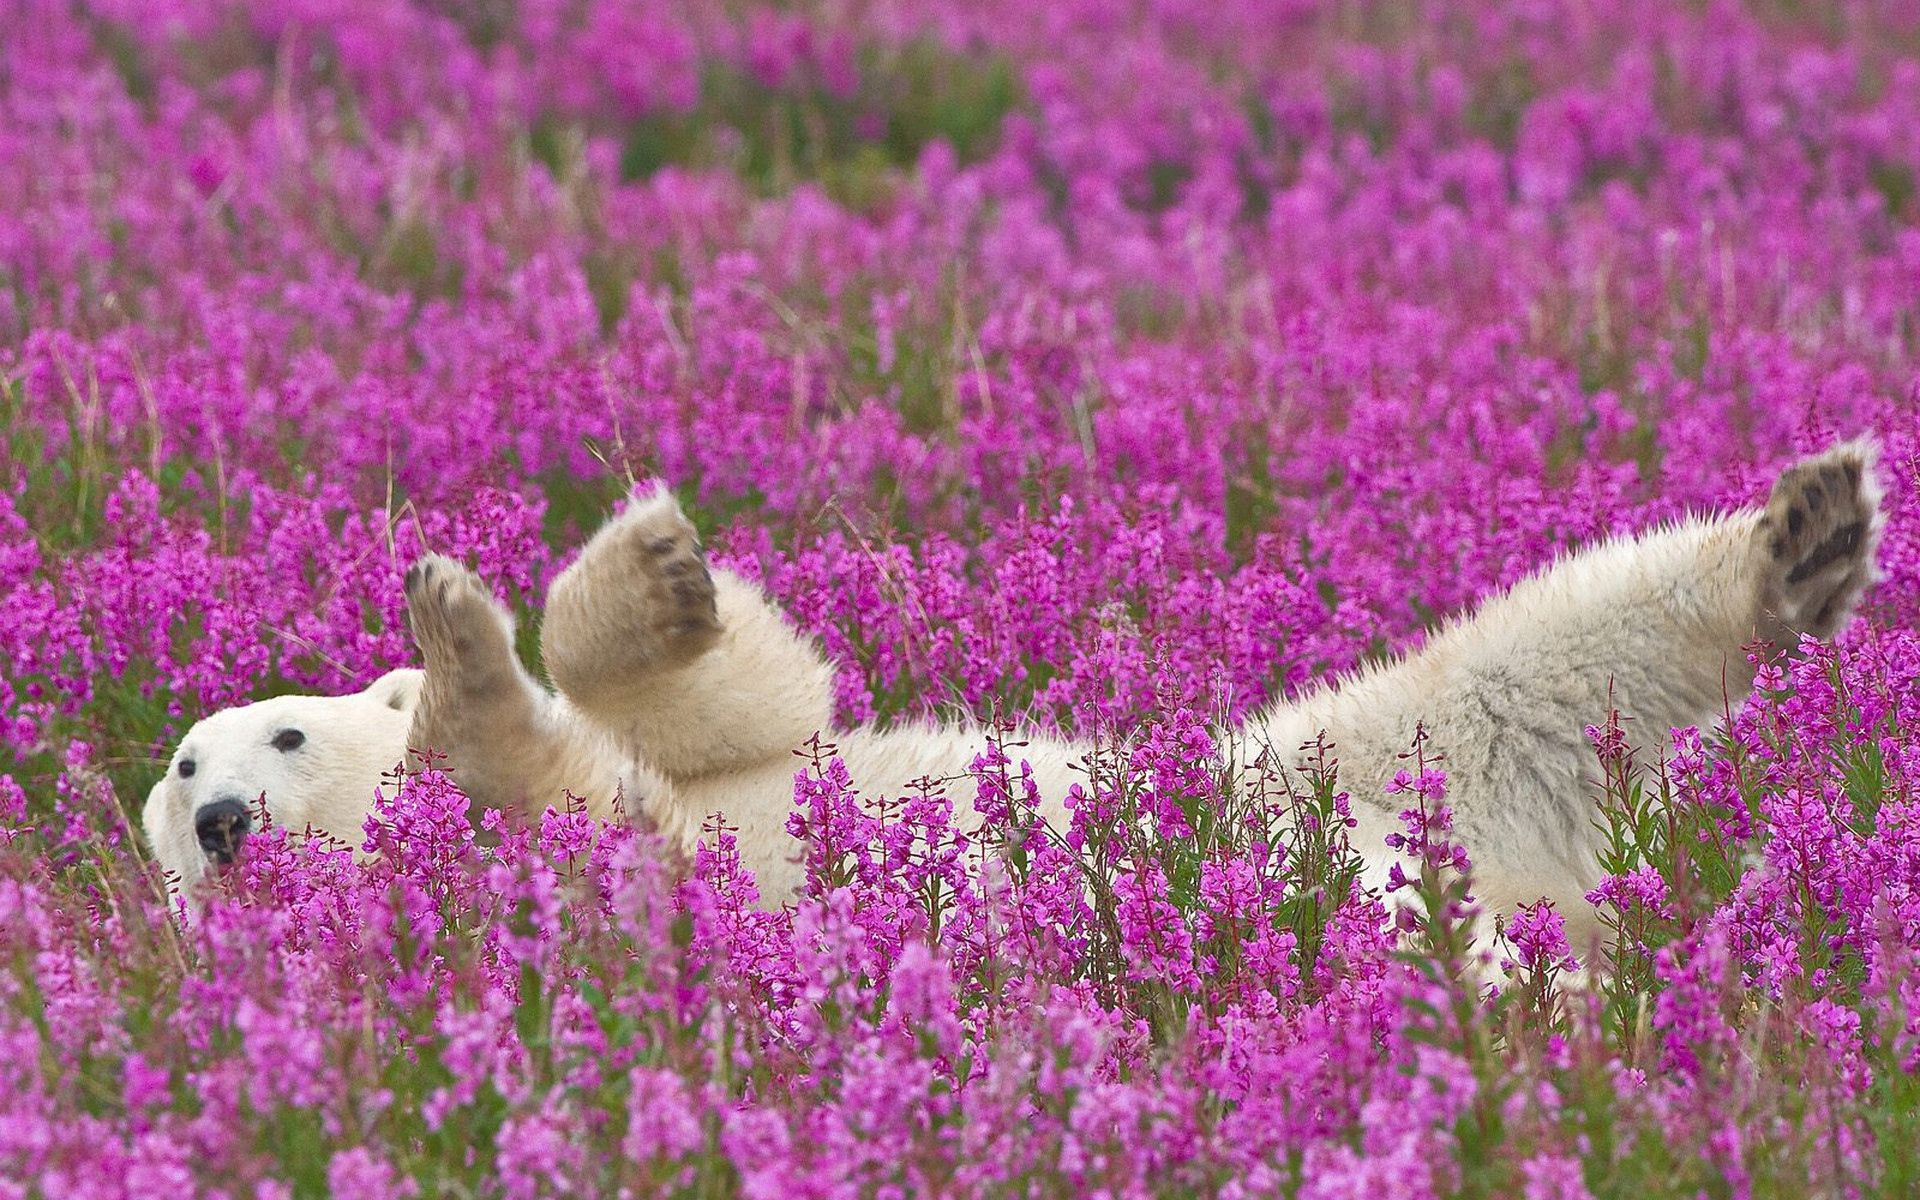 111642 download wallpaper Animals, Polar Bear, To Lie Down, Lie, Young, Joey, Flowers screensavers and pictures for free